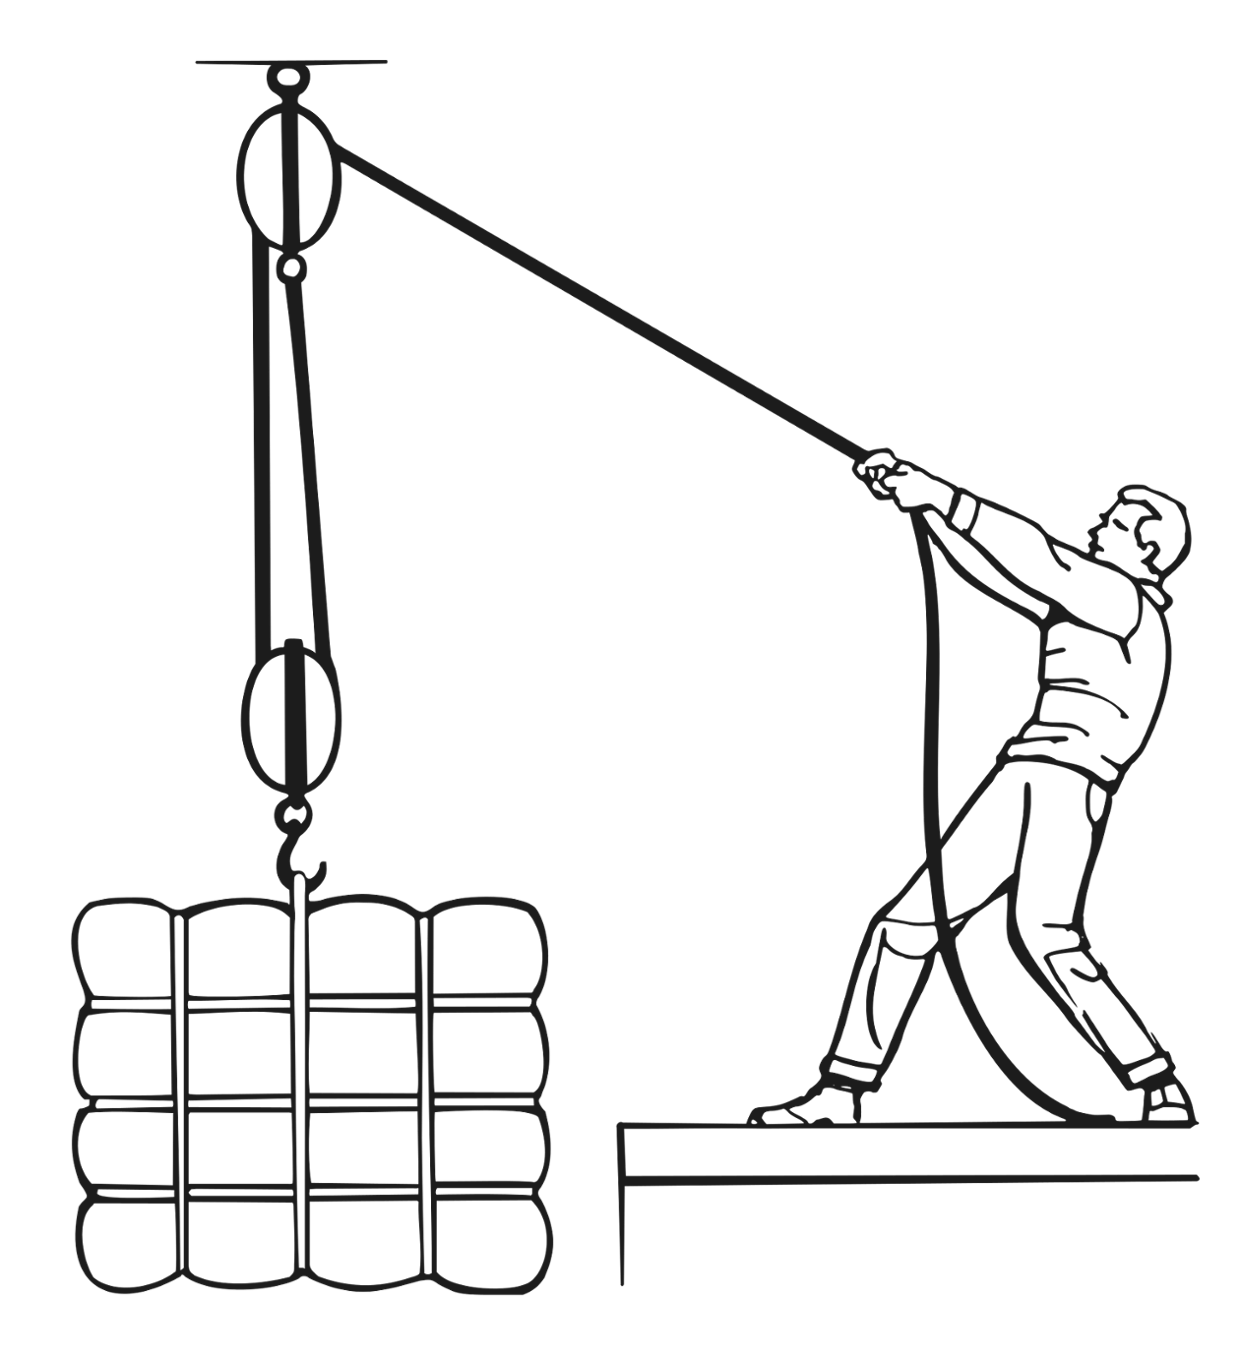 A pulley is a simple machine made up of a wheel and rope